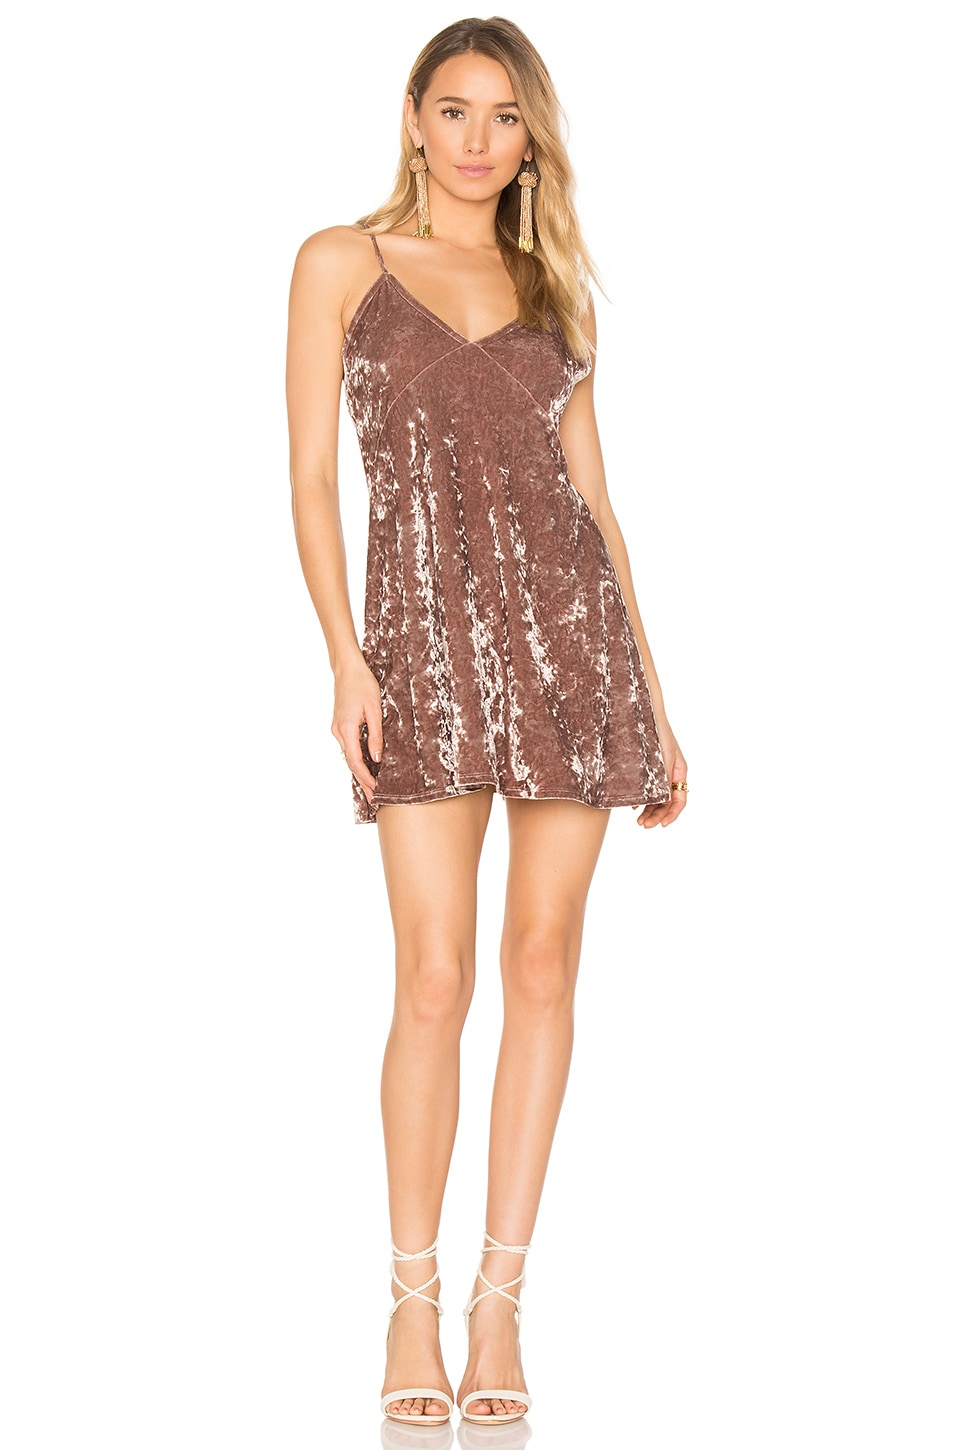 Privacy Please x REVOLVE Downtown Slip Dress in Mocha